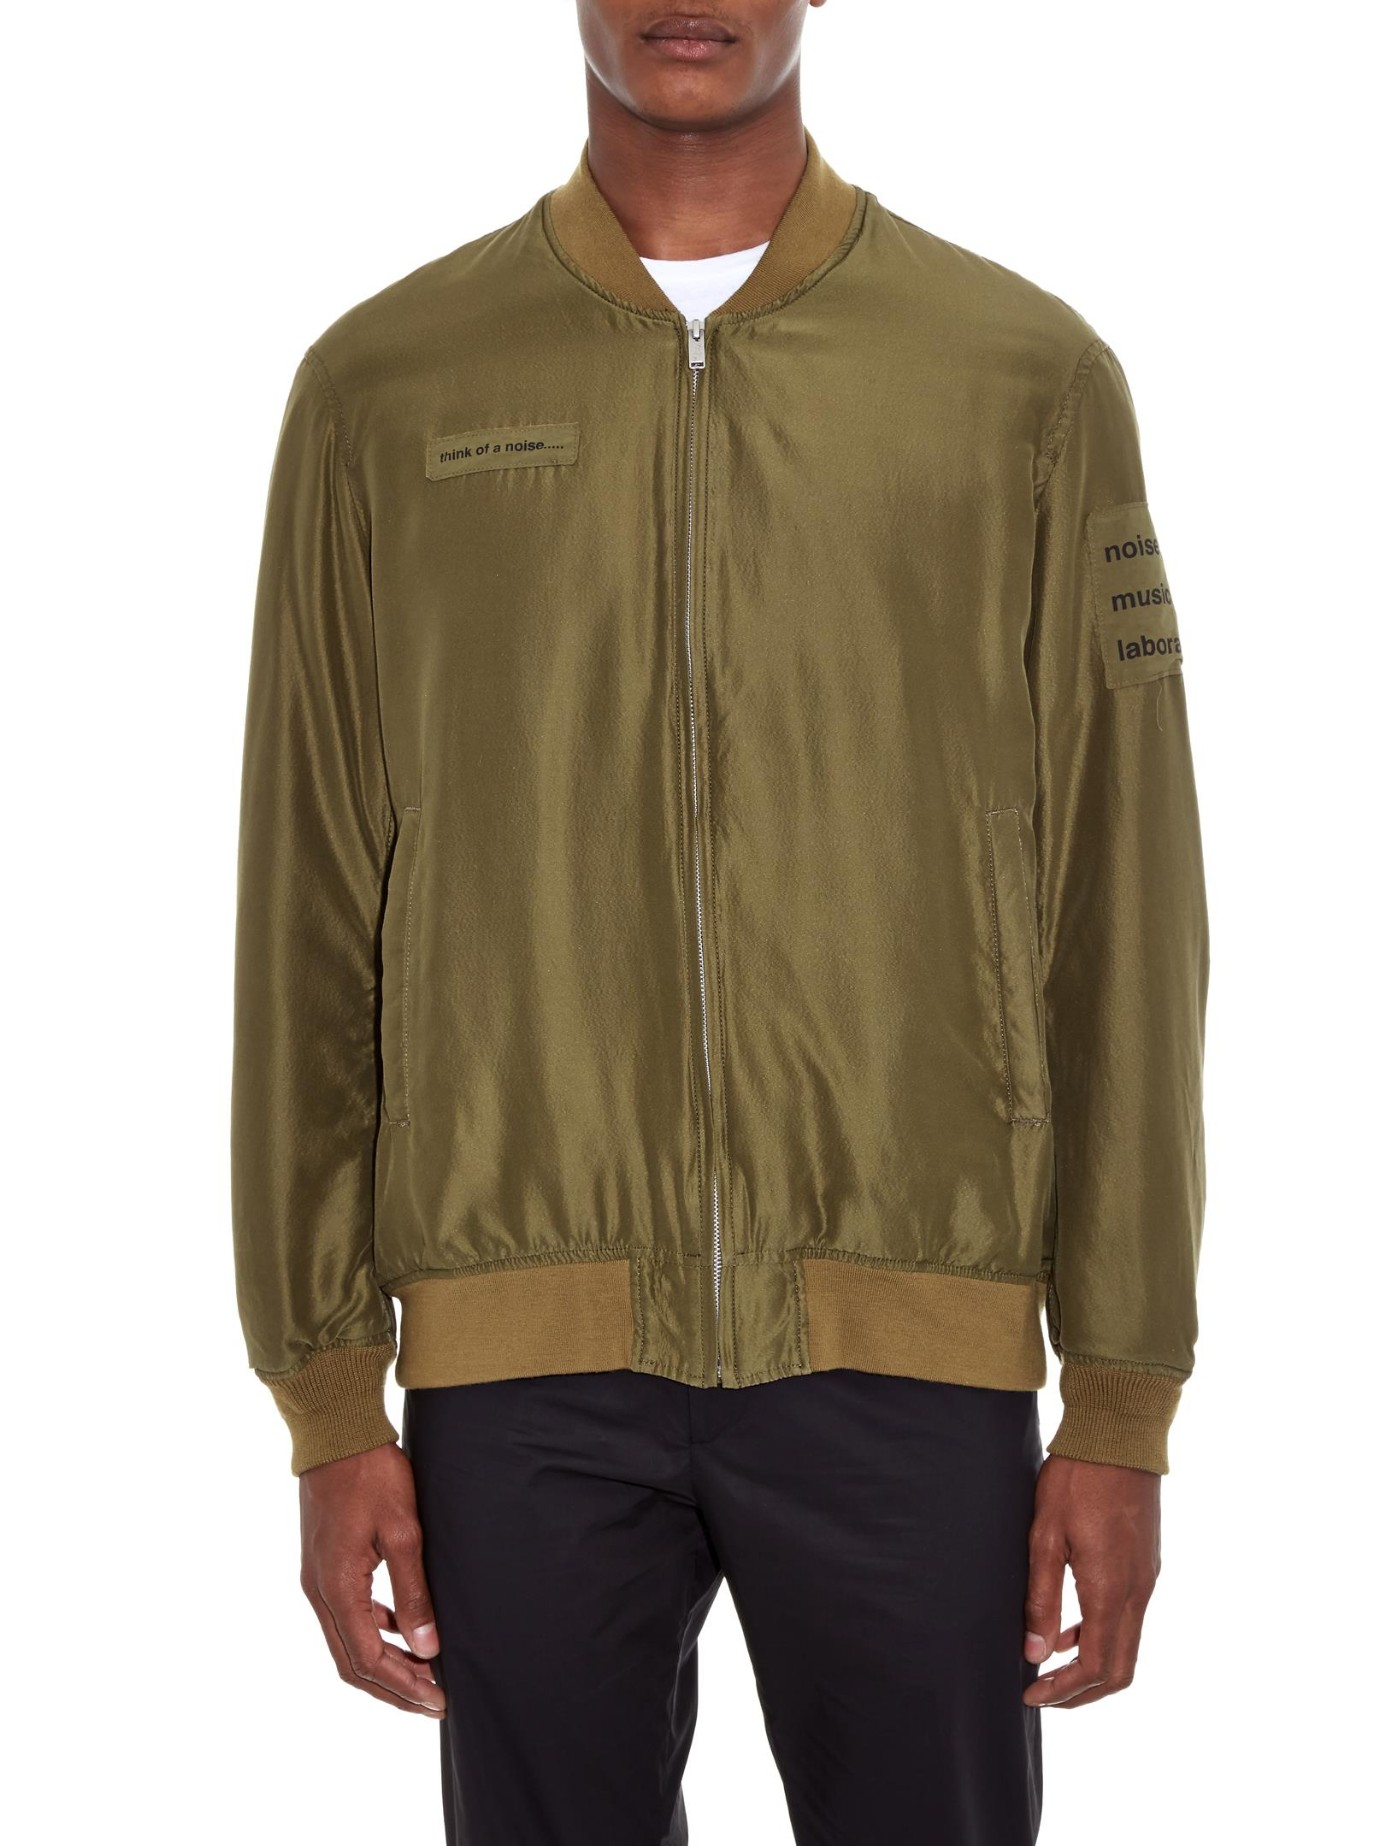 Undercover Maniac Silk Blend Bomber Jacket In Green For